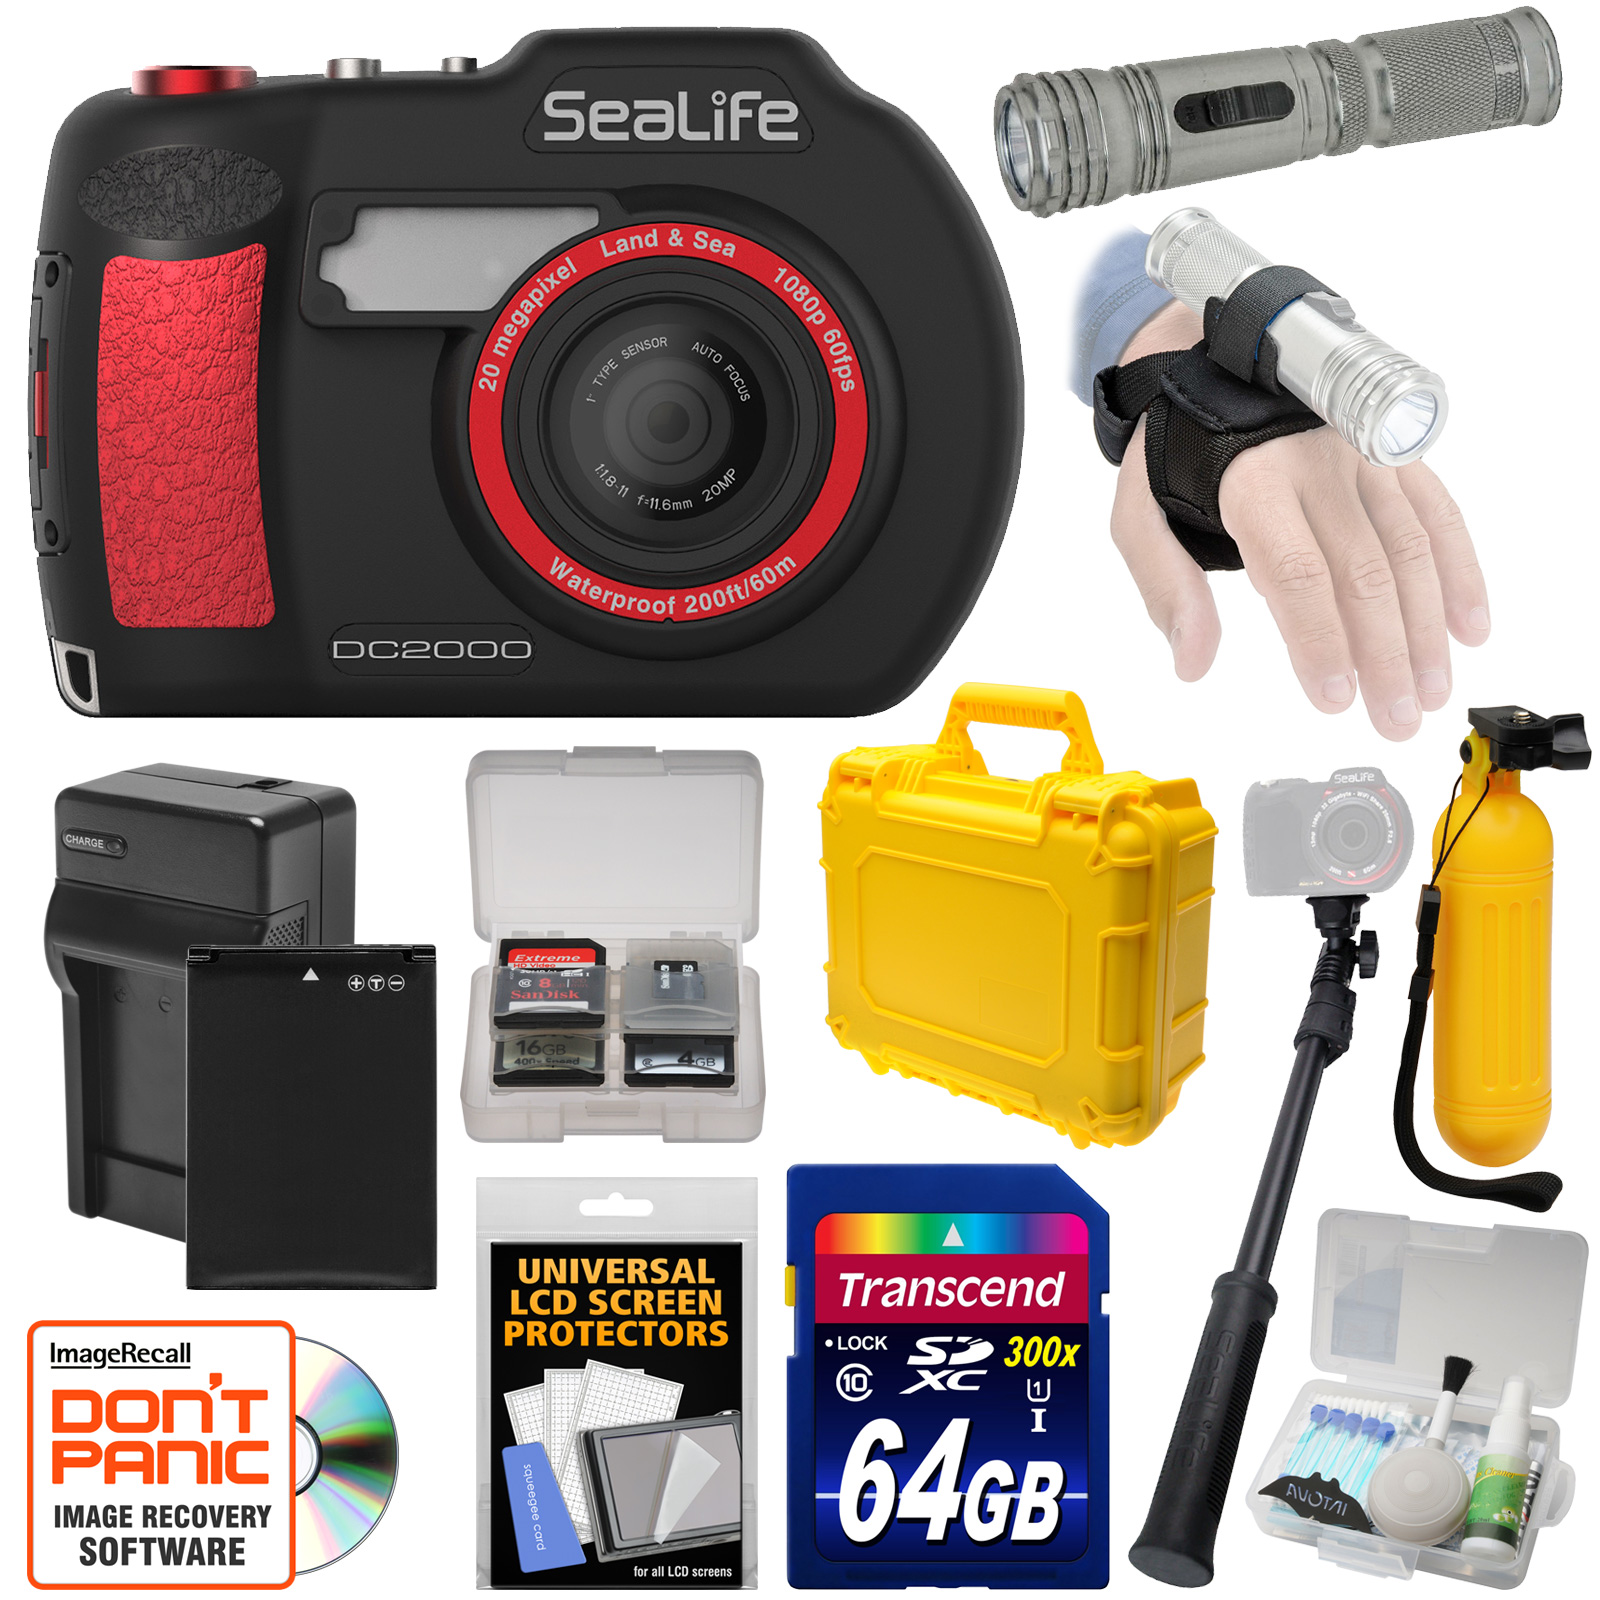 SeaLife DC2000 HD Underwater Digital Camera with AquaPod Selfie Stick + 64GB Card + Battery & Charger + Hard... by SeaLife